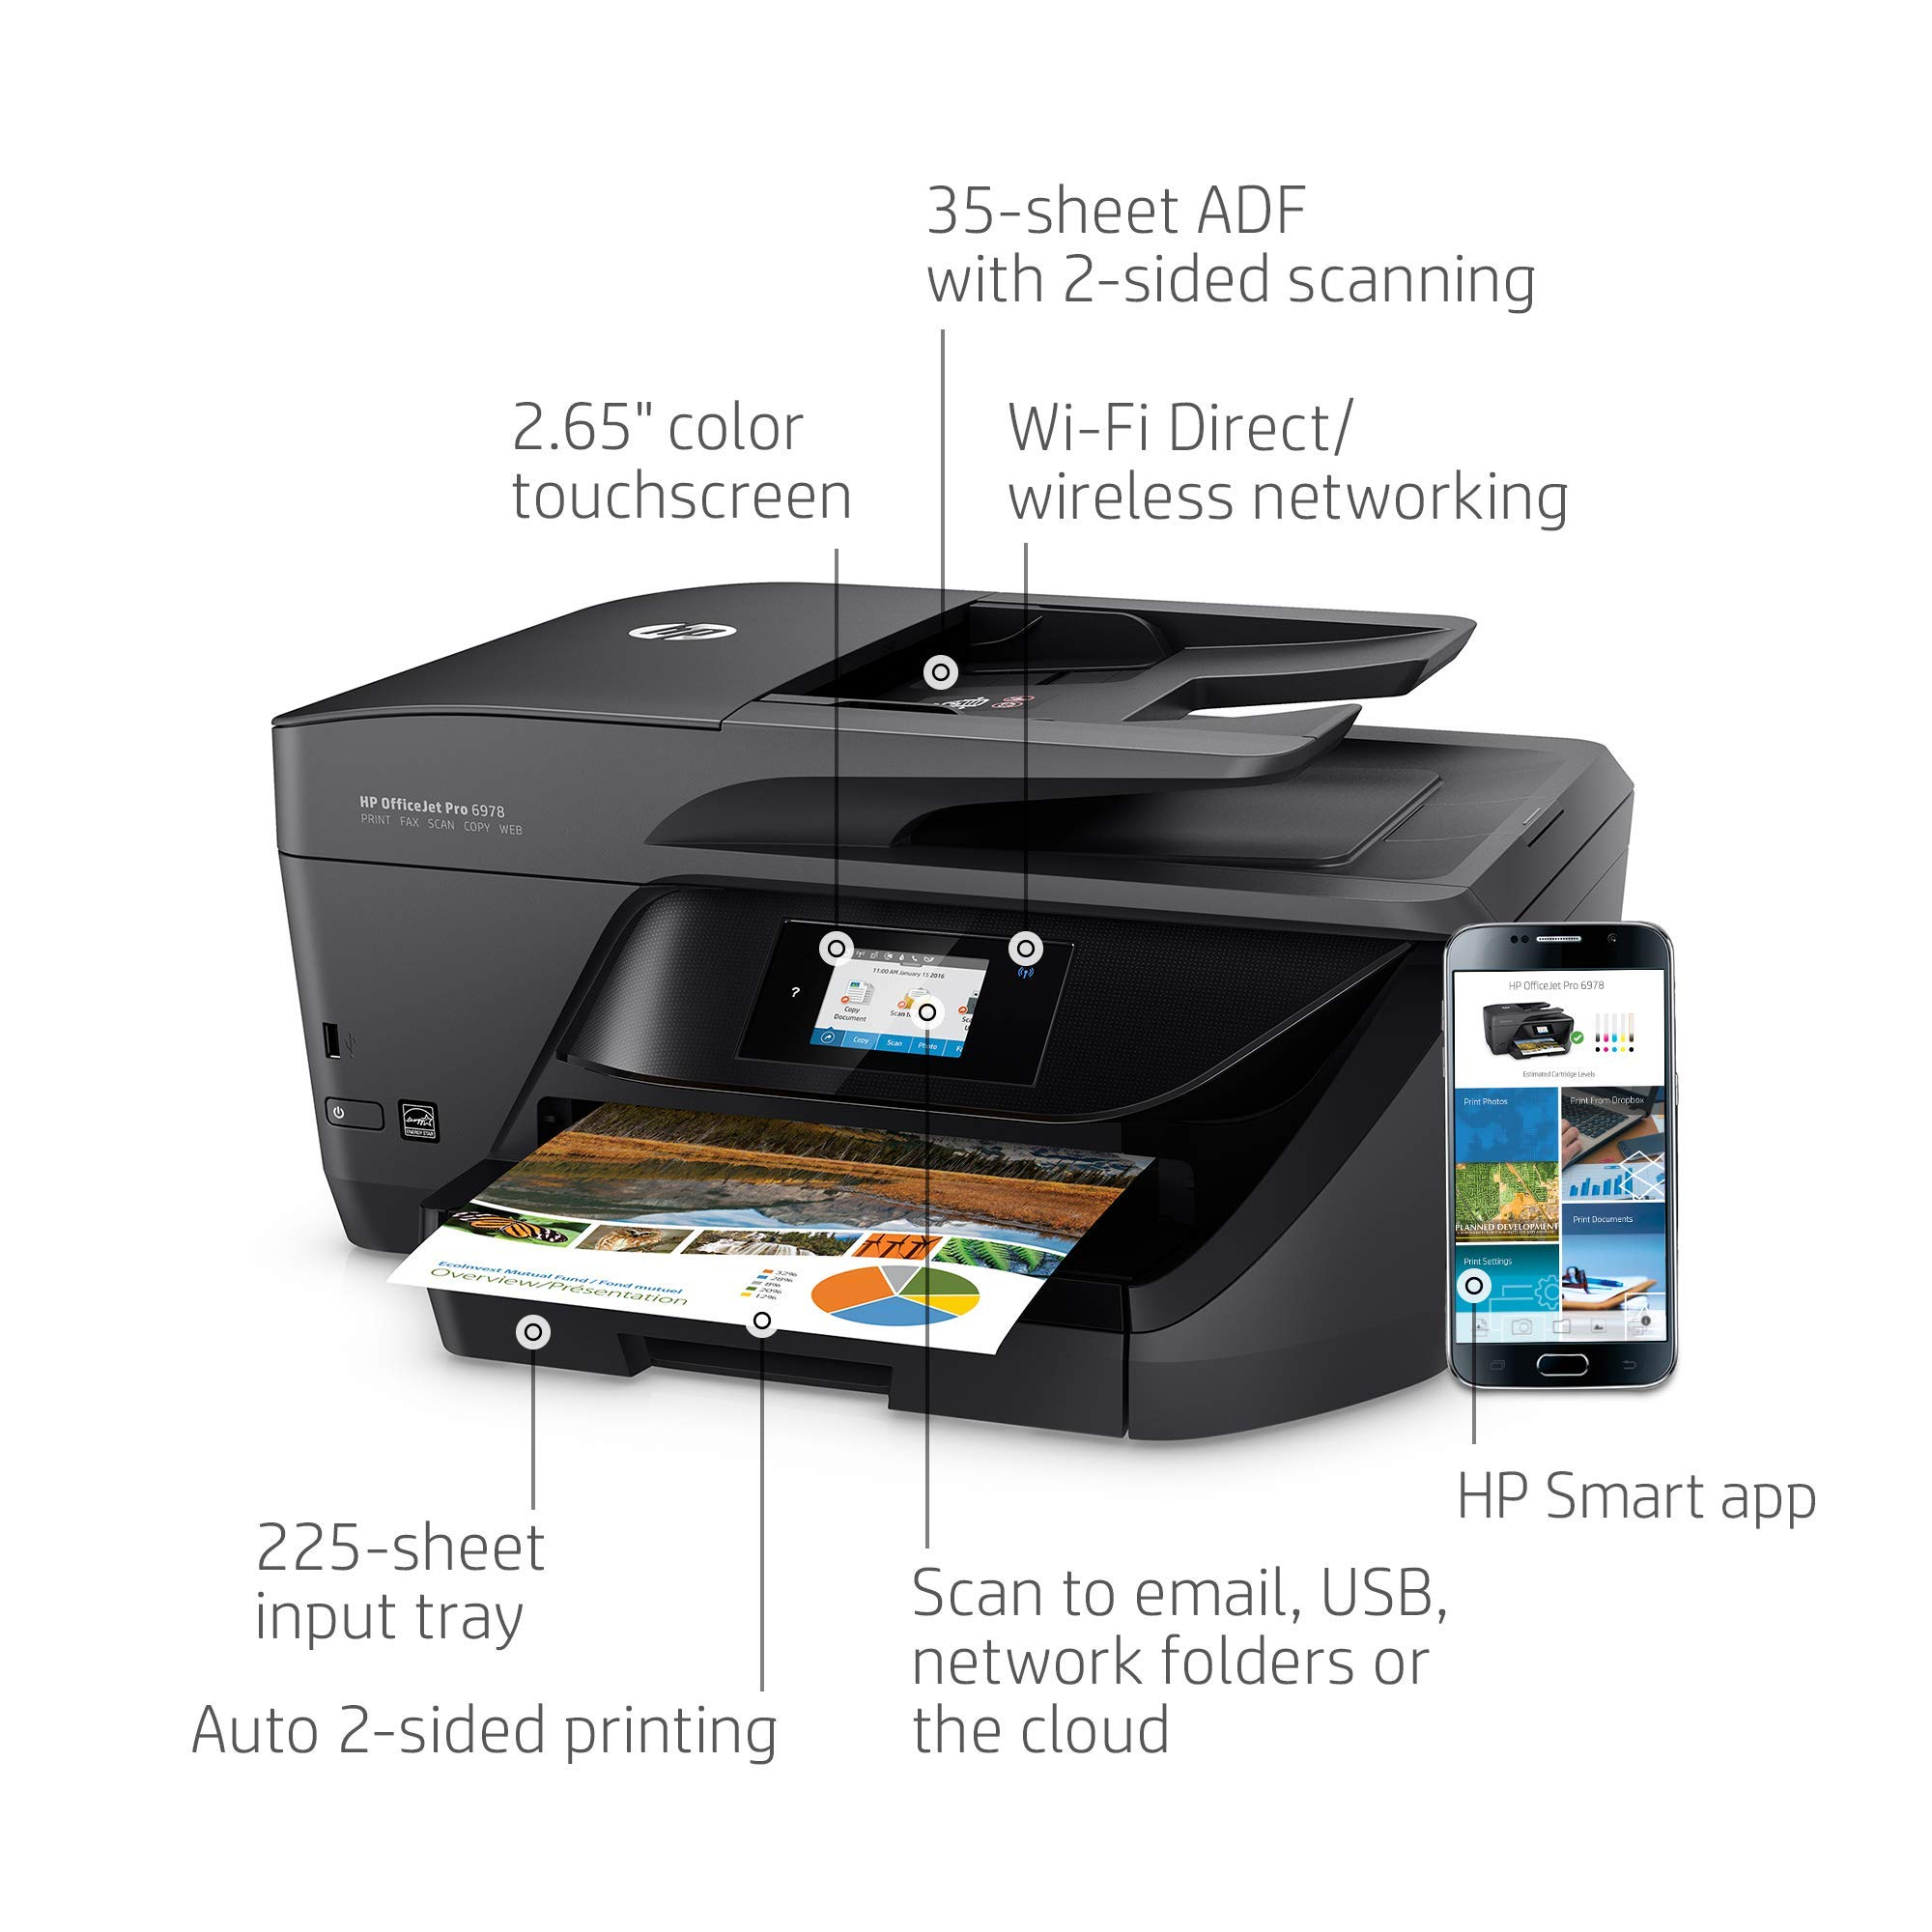 HP OfficeJet Pro 6978 All-in-One Wireless Printer with Mobile Printing, HP Instant Ink & Amazon Dash Replenishment Ready (T0F29A) (Renewed) by HP (Image #2)